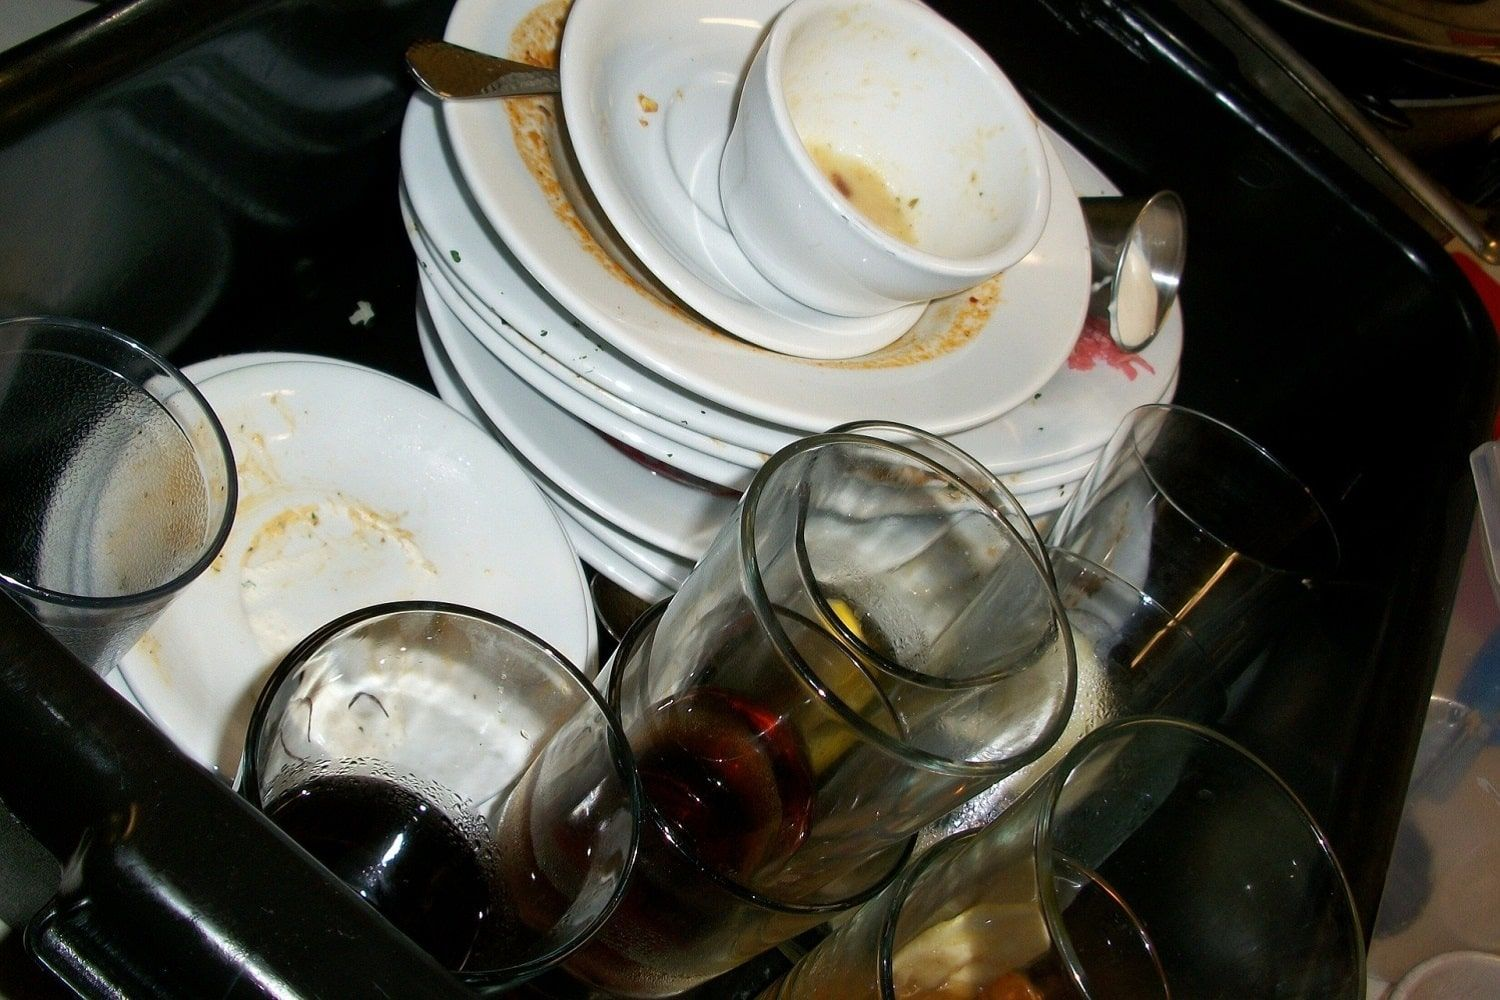 dishes-197_1920-min